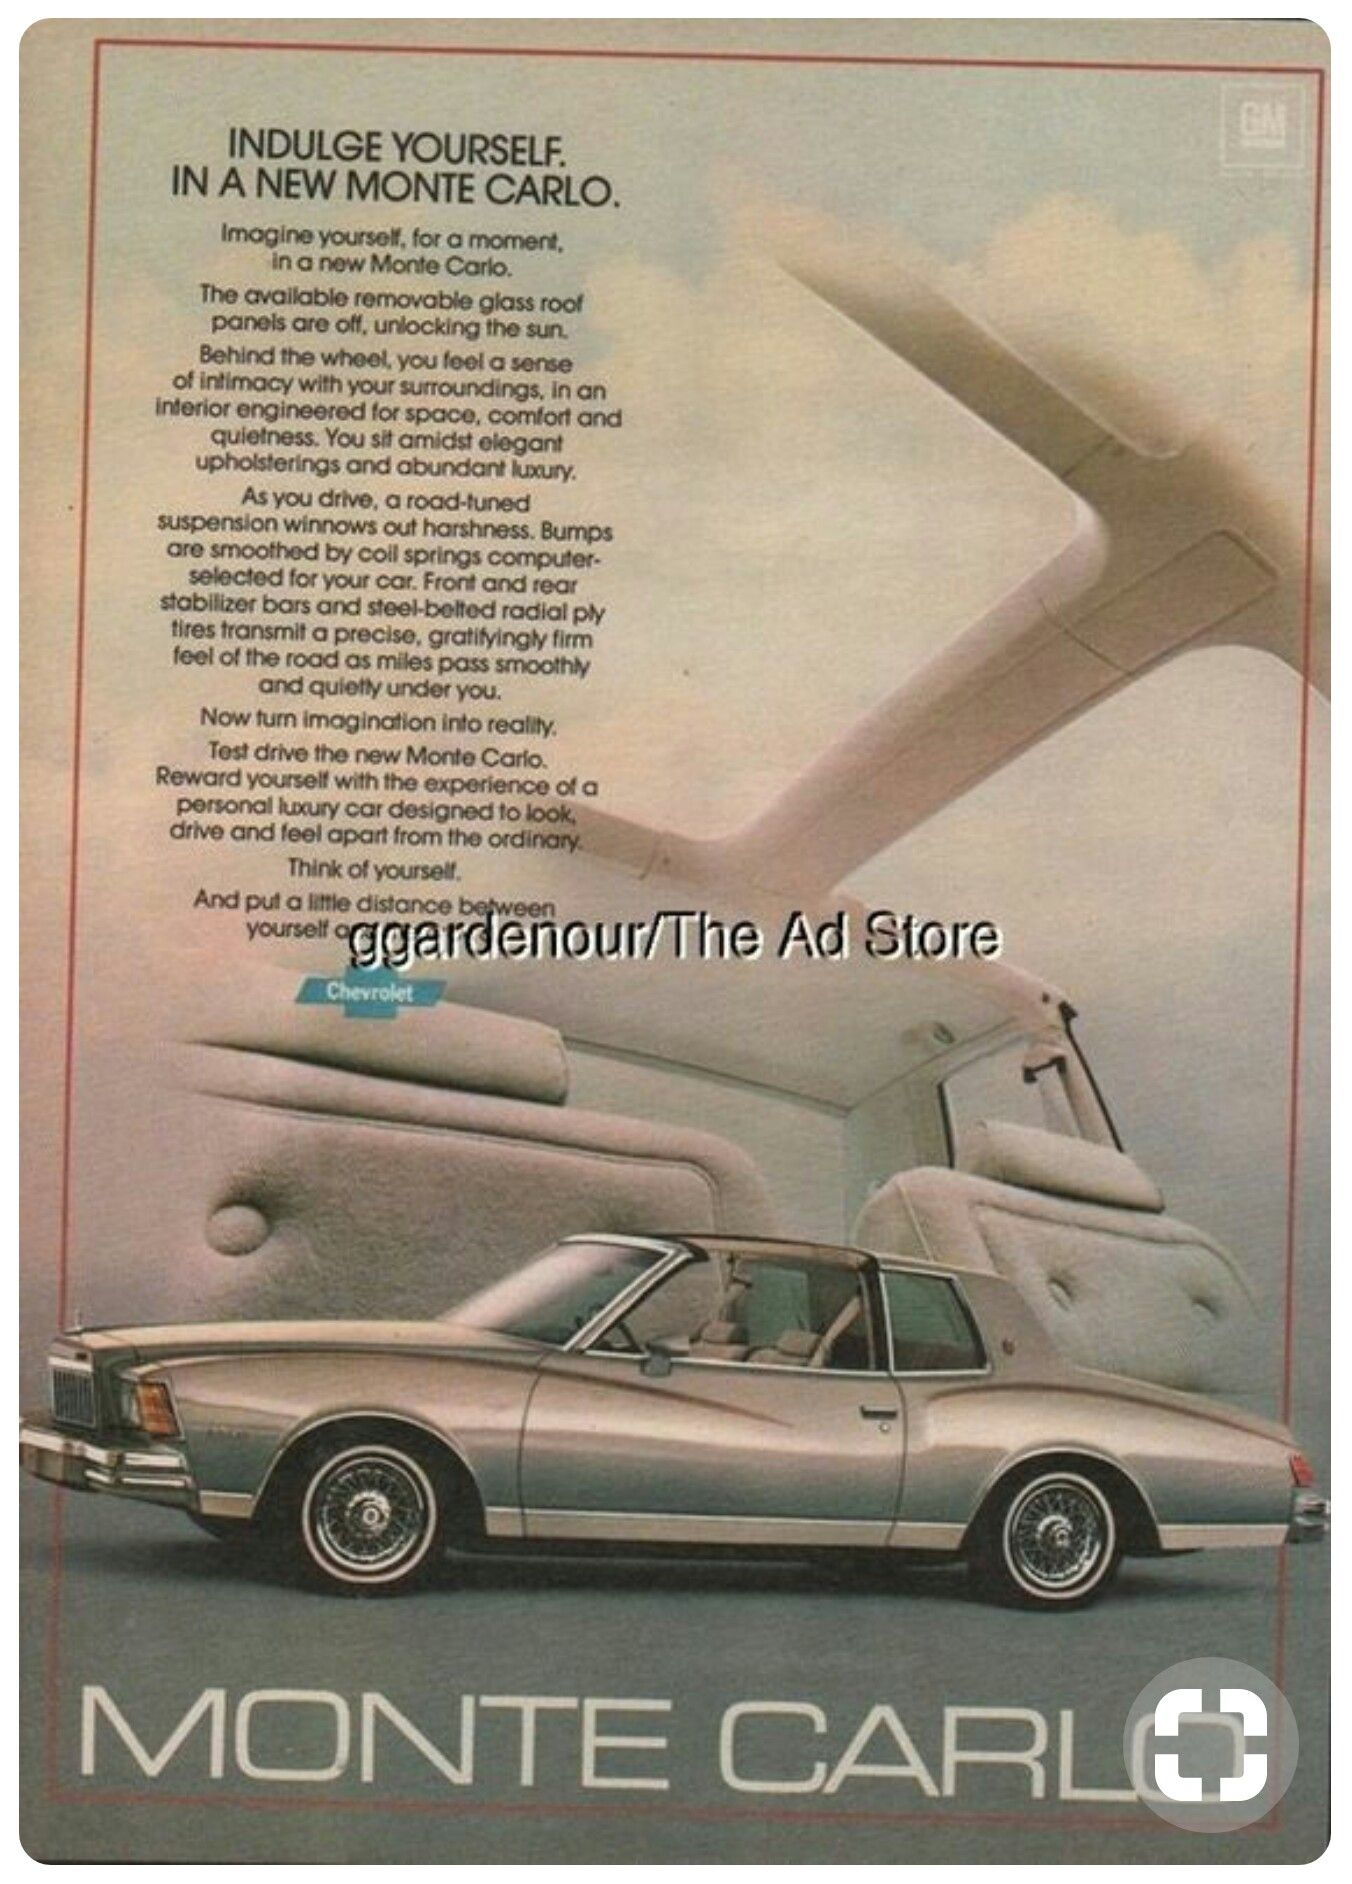 Pin By Deborah Paul On Advertising Ads In 2020 Monte Carlo Car Ads Chevy Monte Carlo